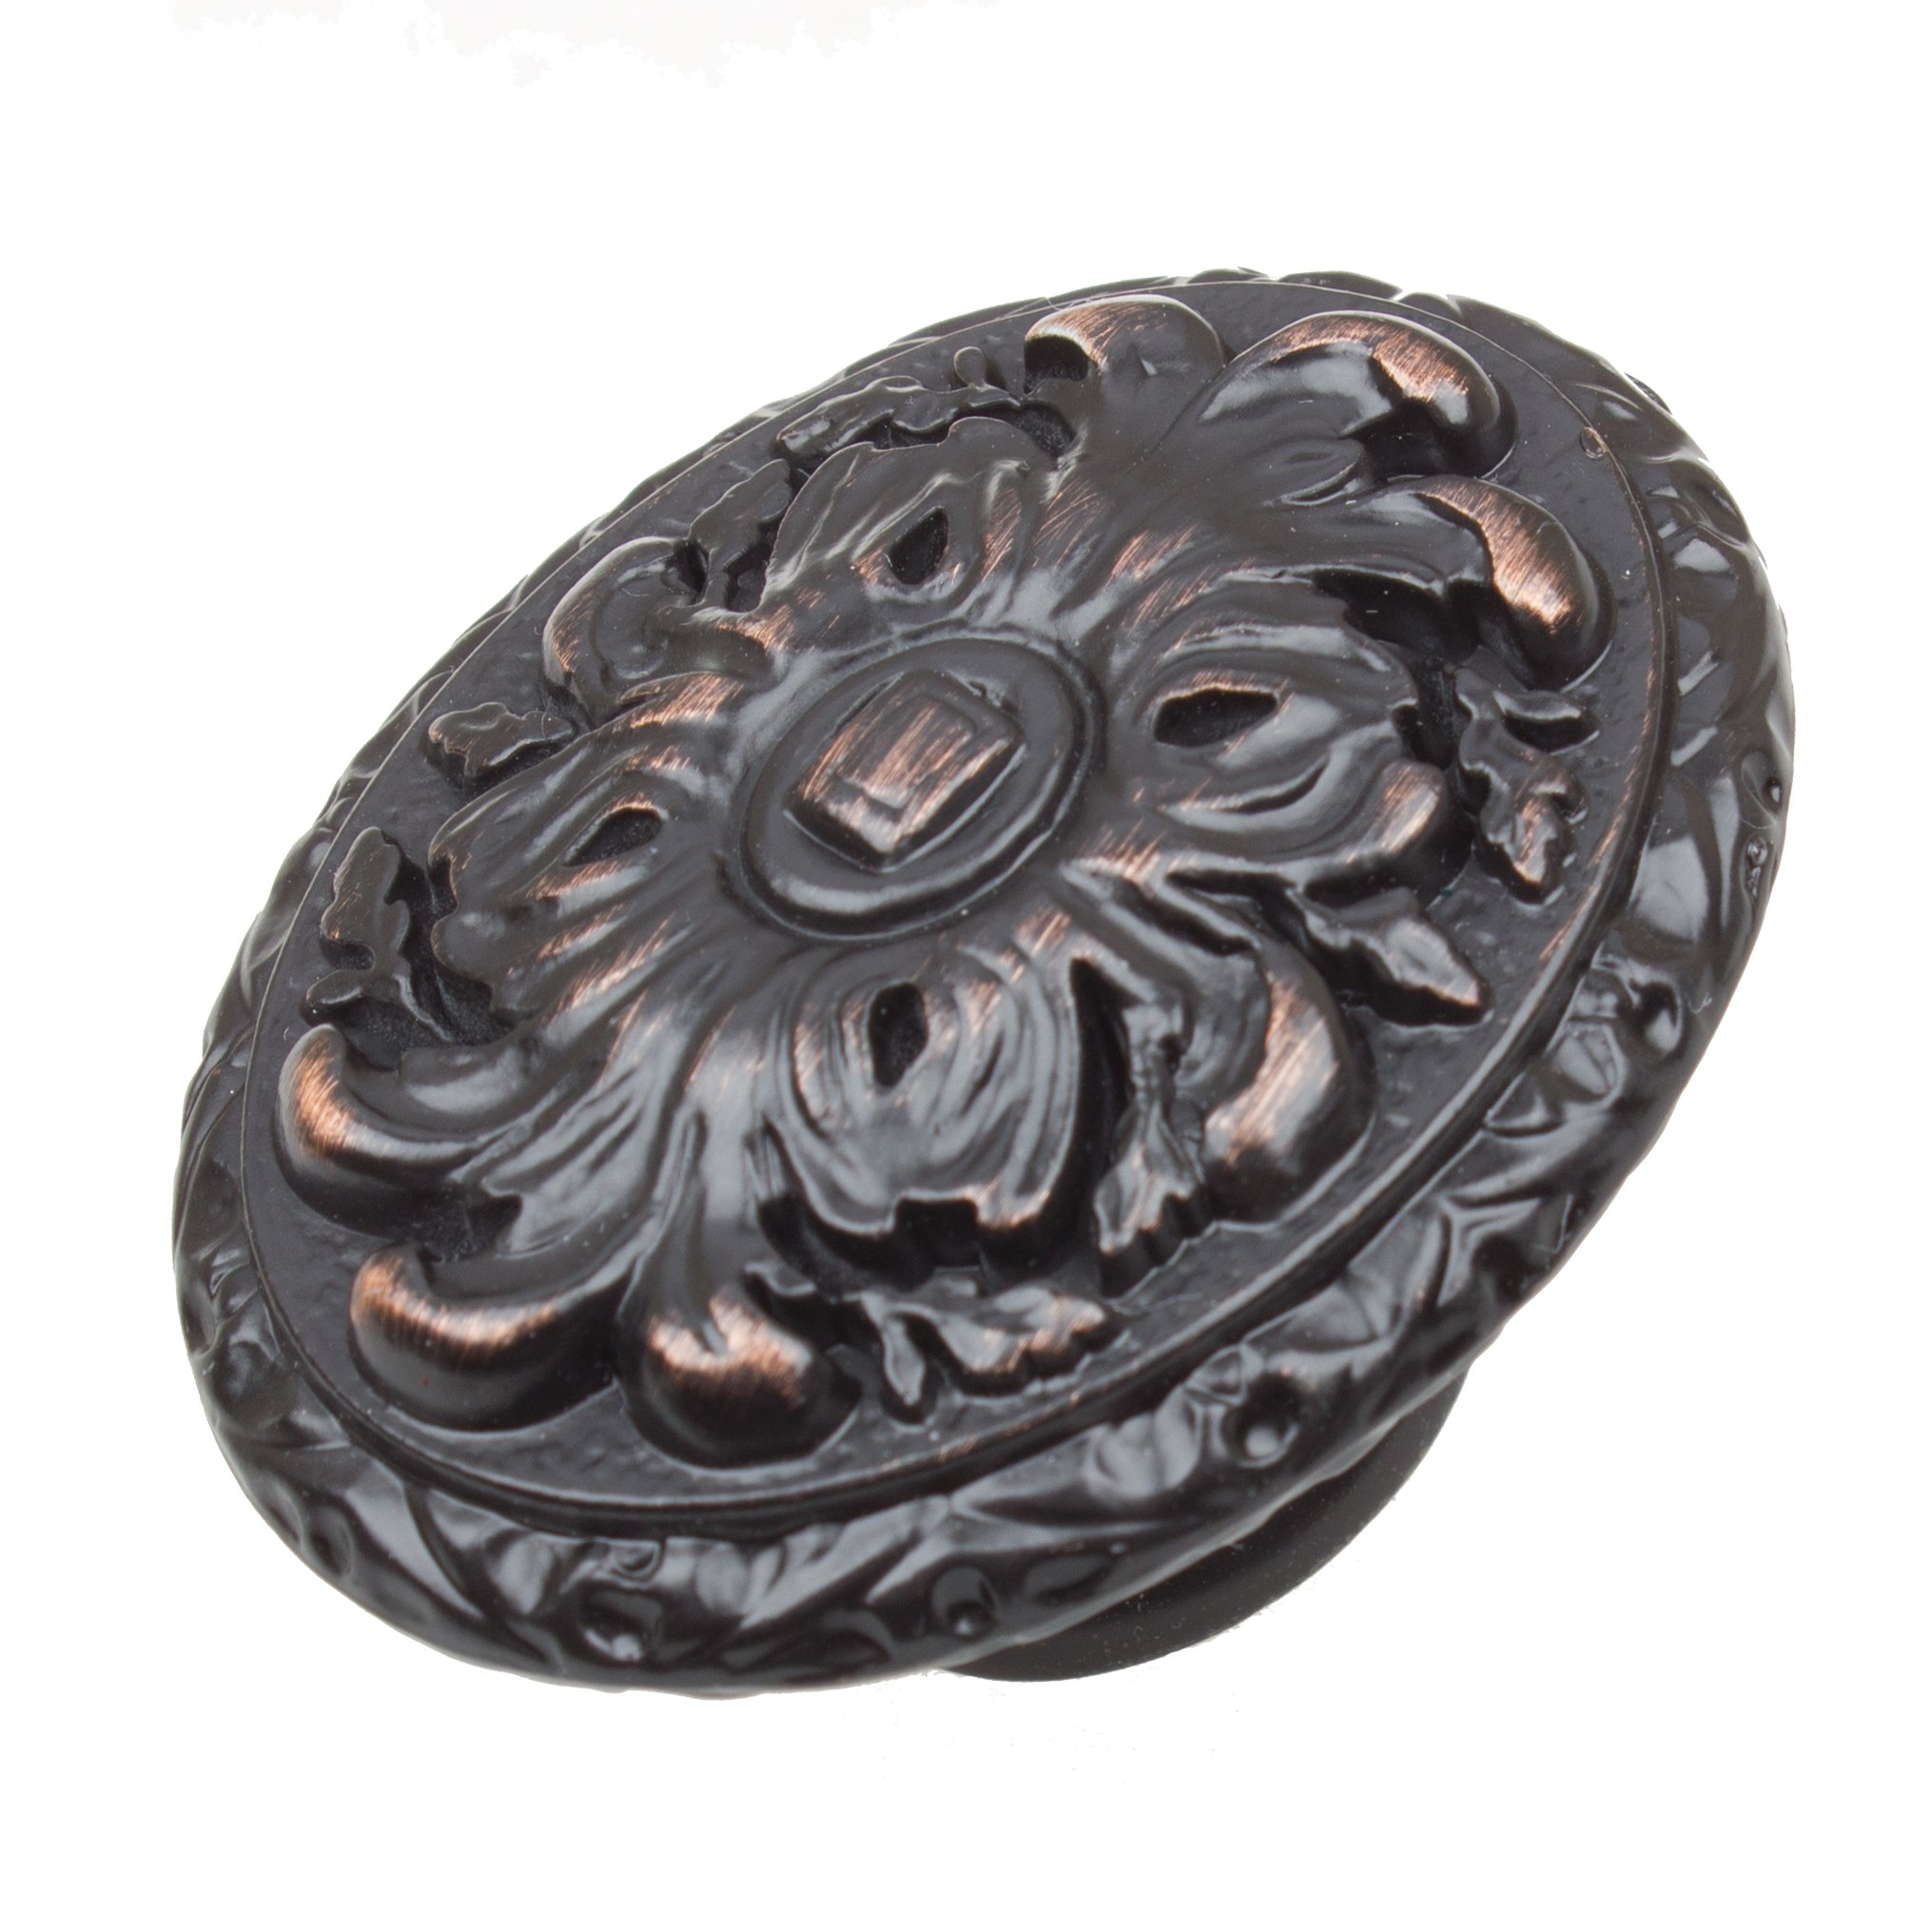 5710-ORB-10 - GlideRite Hardware 2'' Old World Ornate Oval Cabinet Knobs, Oil Rubbed Bronze (Pack of 10) by GlideRite Hardware